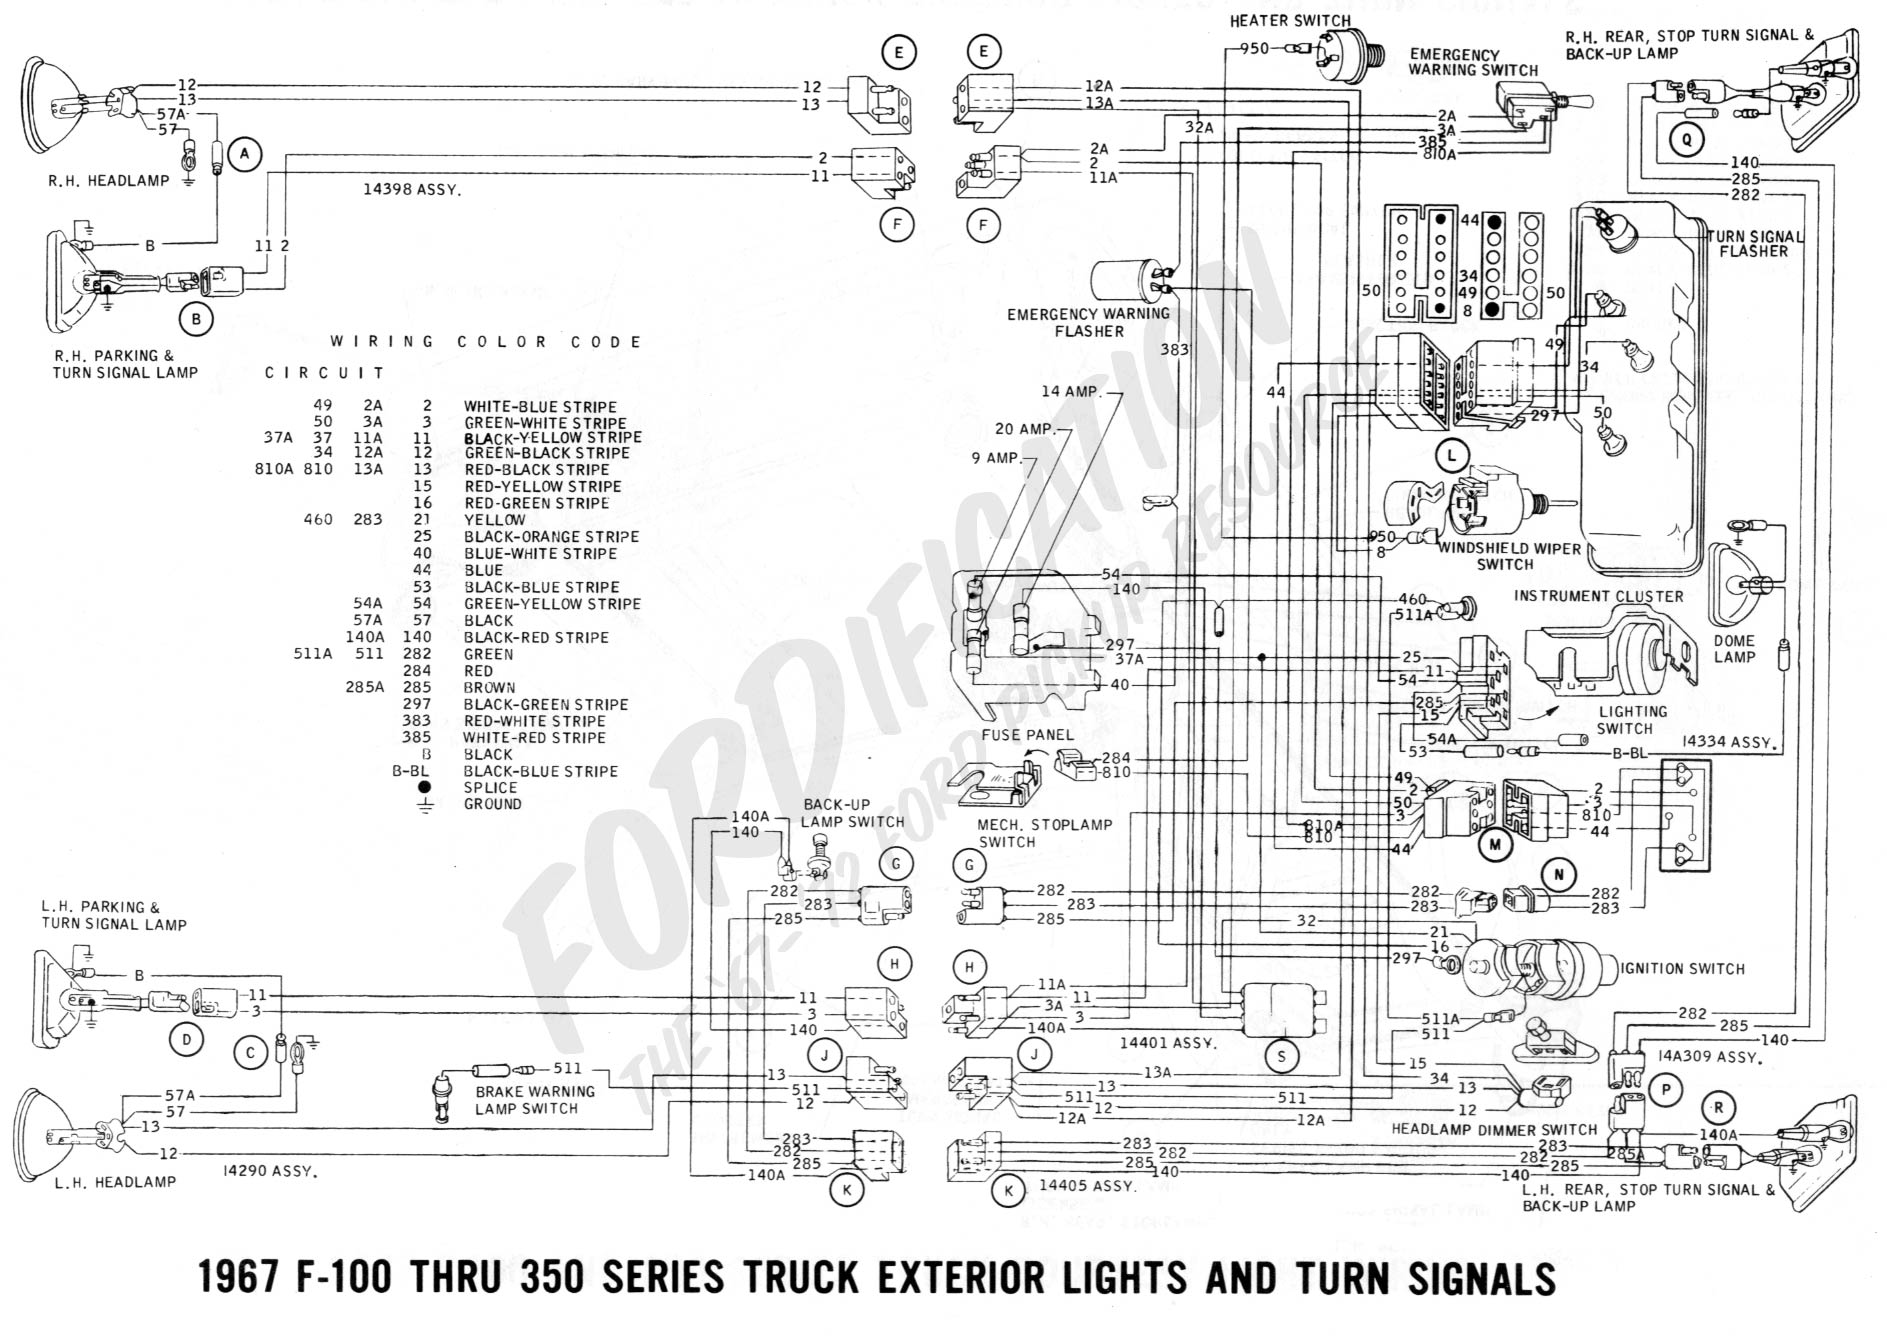 1968 Mustang Turn Signal Switch Diagram Wiring Schematic Typical Rv Wiring Diagram Tail Light Ford For Wiring Diagram Schematics